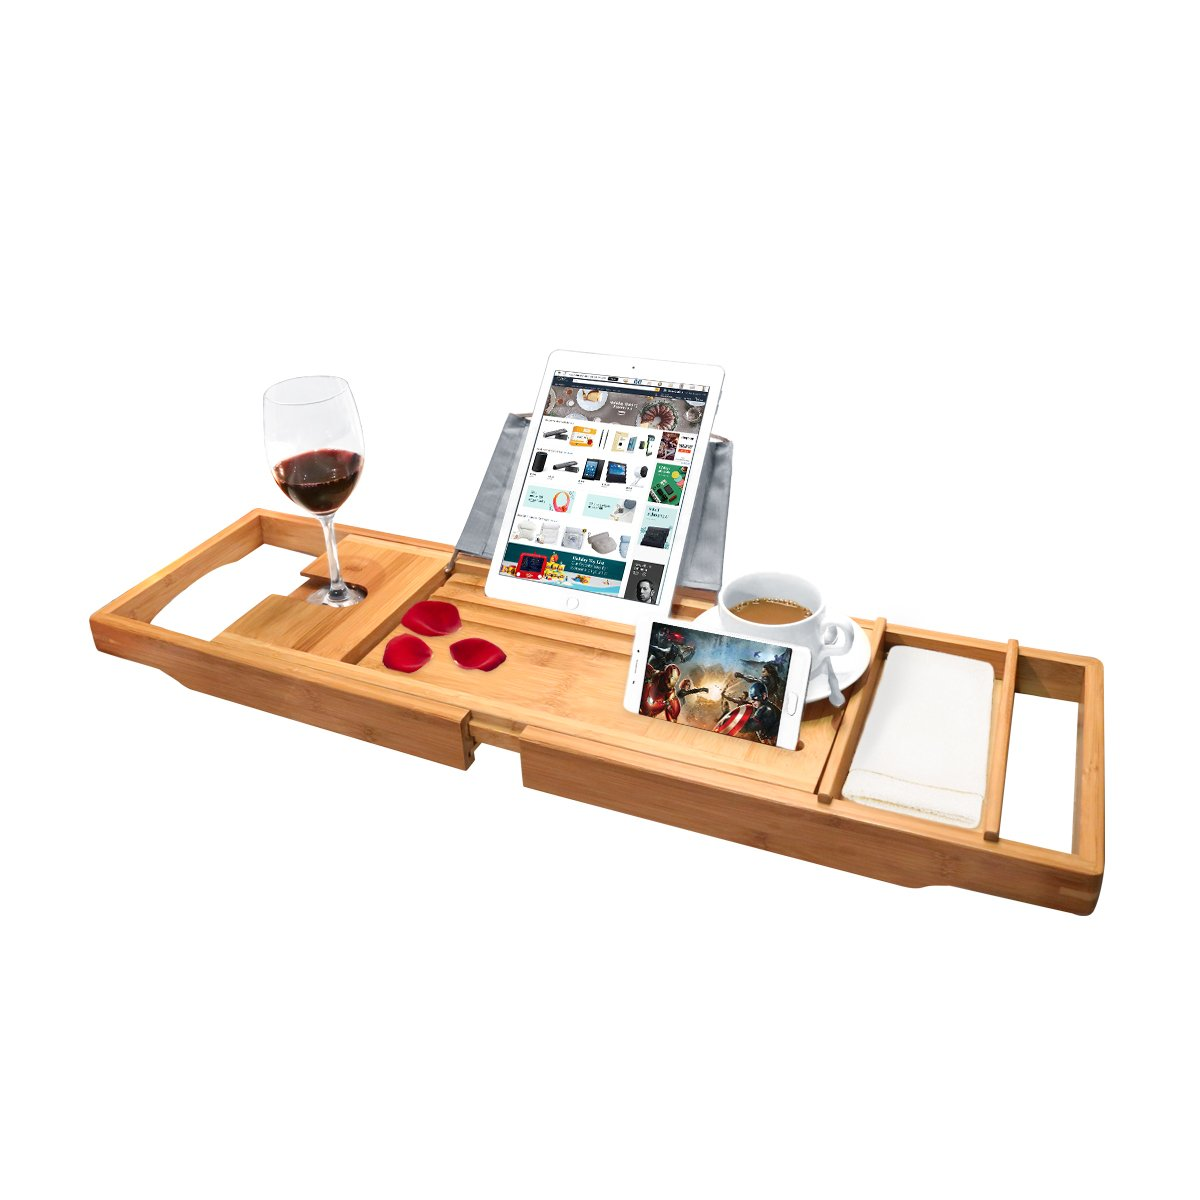 Antart Bathtub Caddy Tray with Book Tablet Wine Holder for Reading Relaxing - Made From Natural Bamboo, Over Bathtub Tray wit